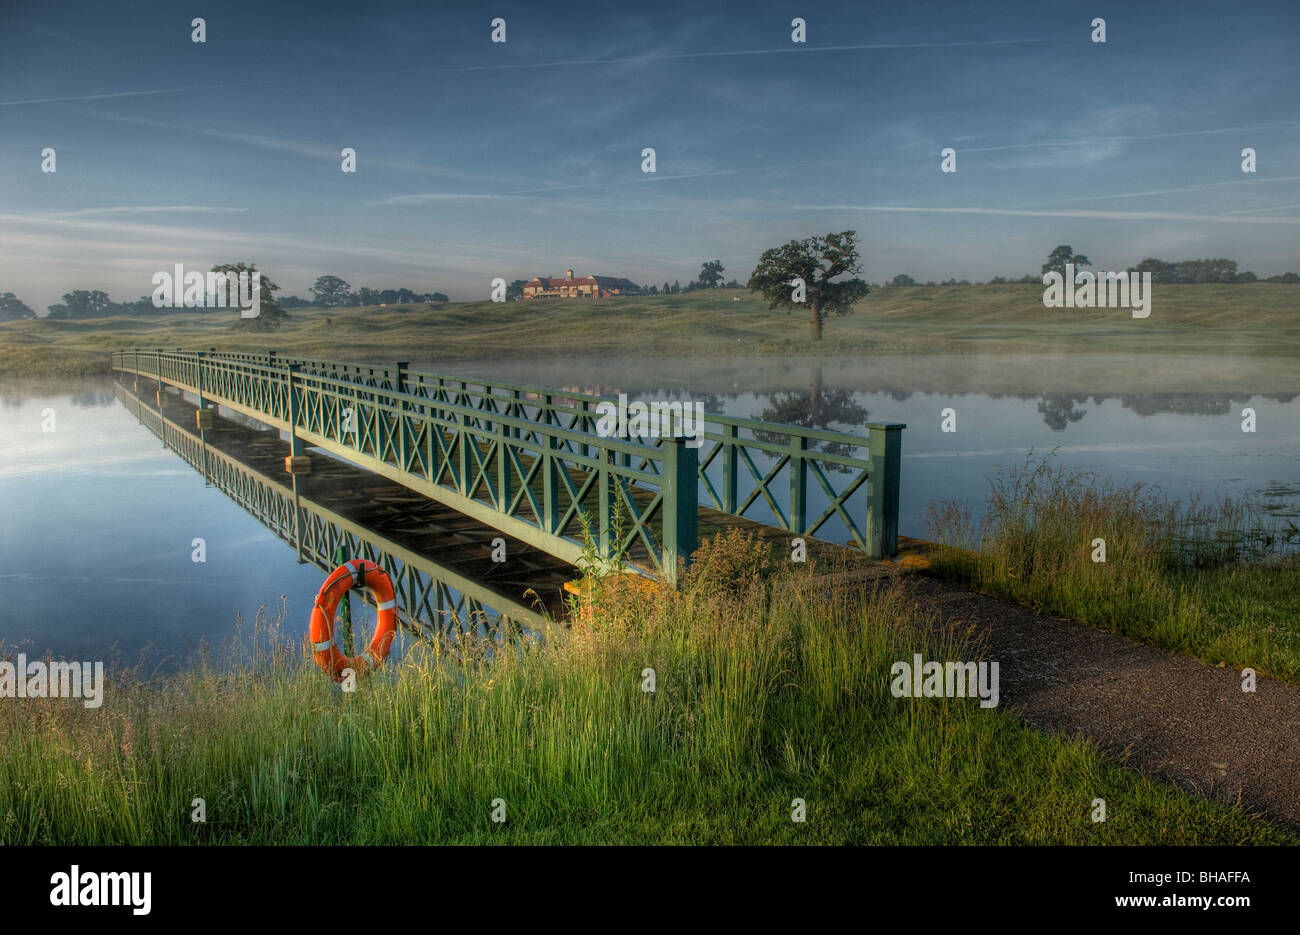 A bridge over the lake at The Oxfordshire Golf Club, Thame, Oxfordshire - Stock Image